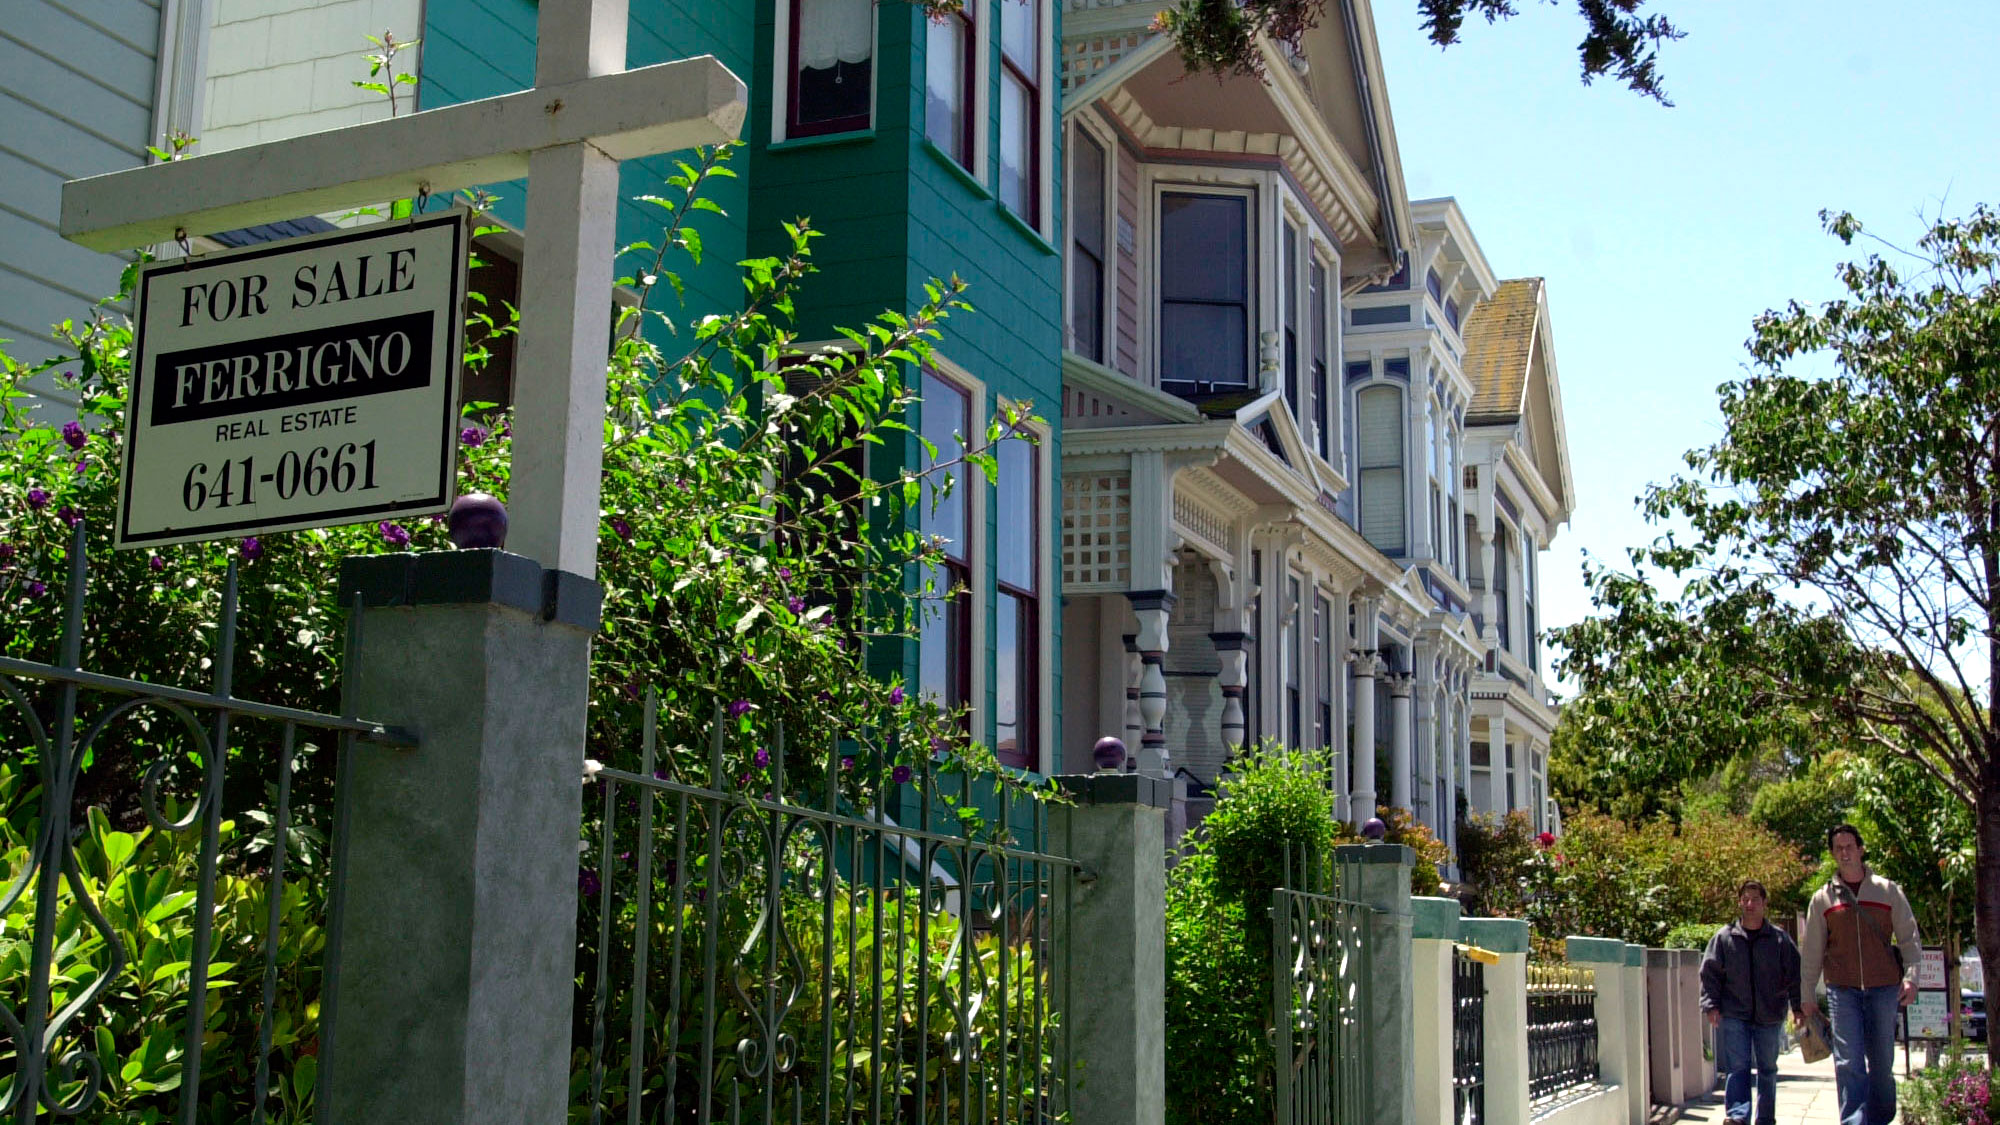 "A ""For Sale"" sign adorns the front yard of a Victorian-style home along Guerrero Street in San Francisco, Monday, June 24, 2002. California's housing market remained red hot in May as home prices in both the San Francisco Bay area and Southern California hit new highs, with a mid-priced home in the Bay Area selling at $413,000 and a mid-priced home in Southern California going at $264,000. (AP Photo/Julie Jacobson)"